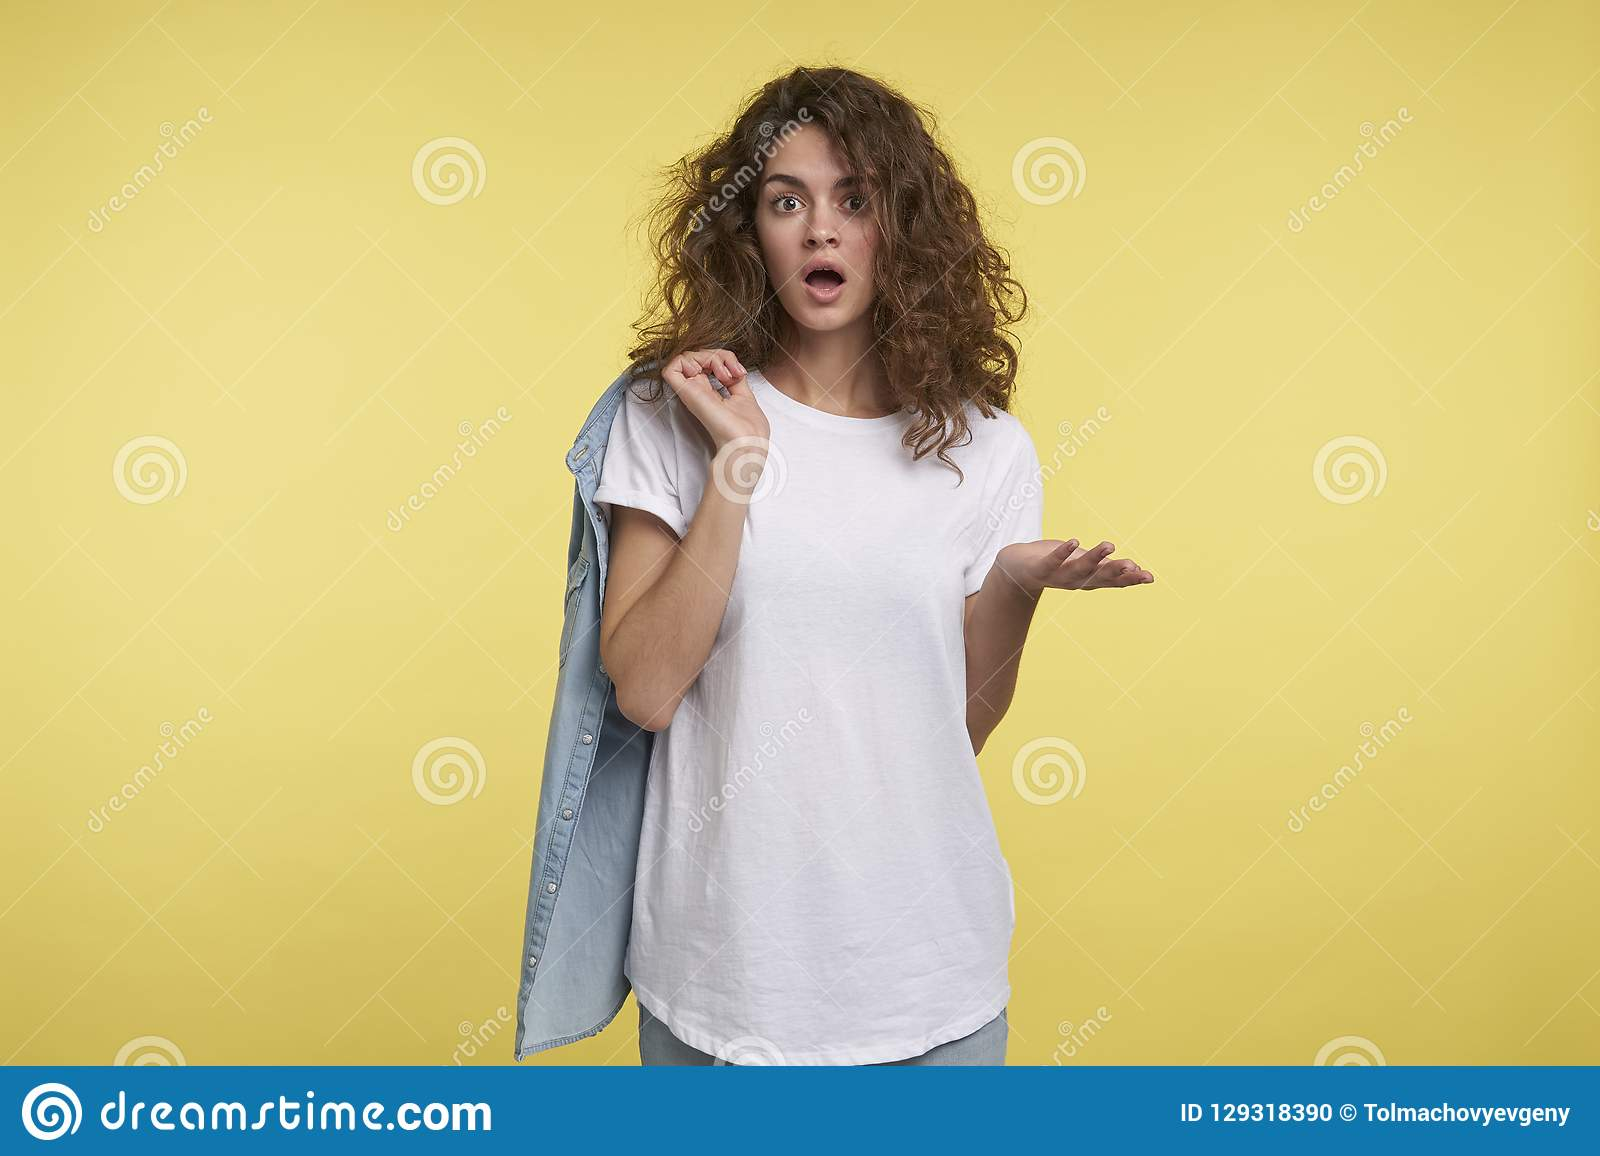 Midium shot of young surprised woman with curly hair